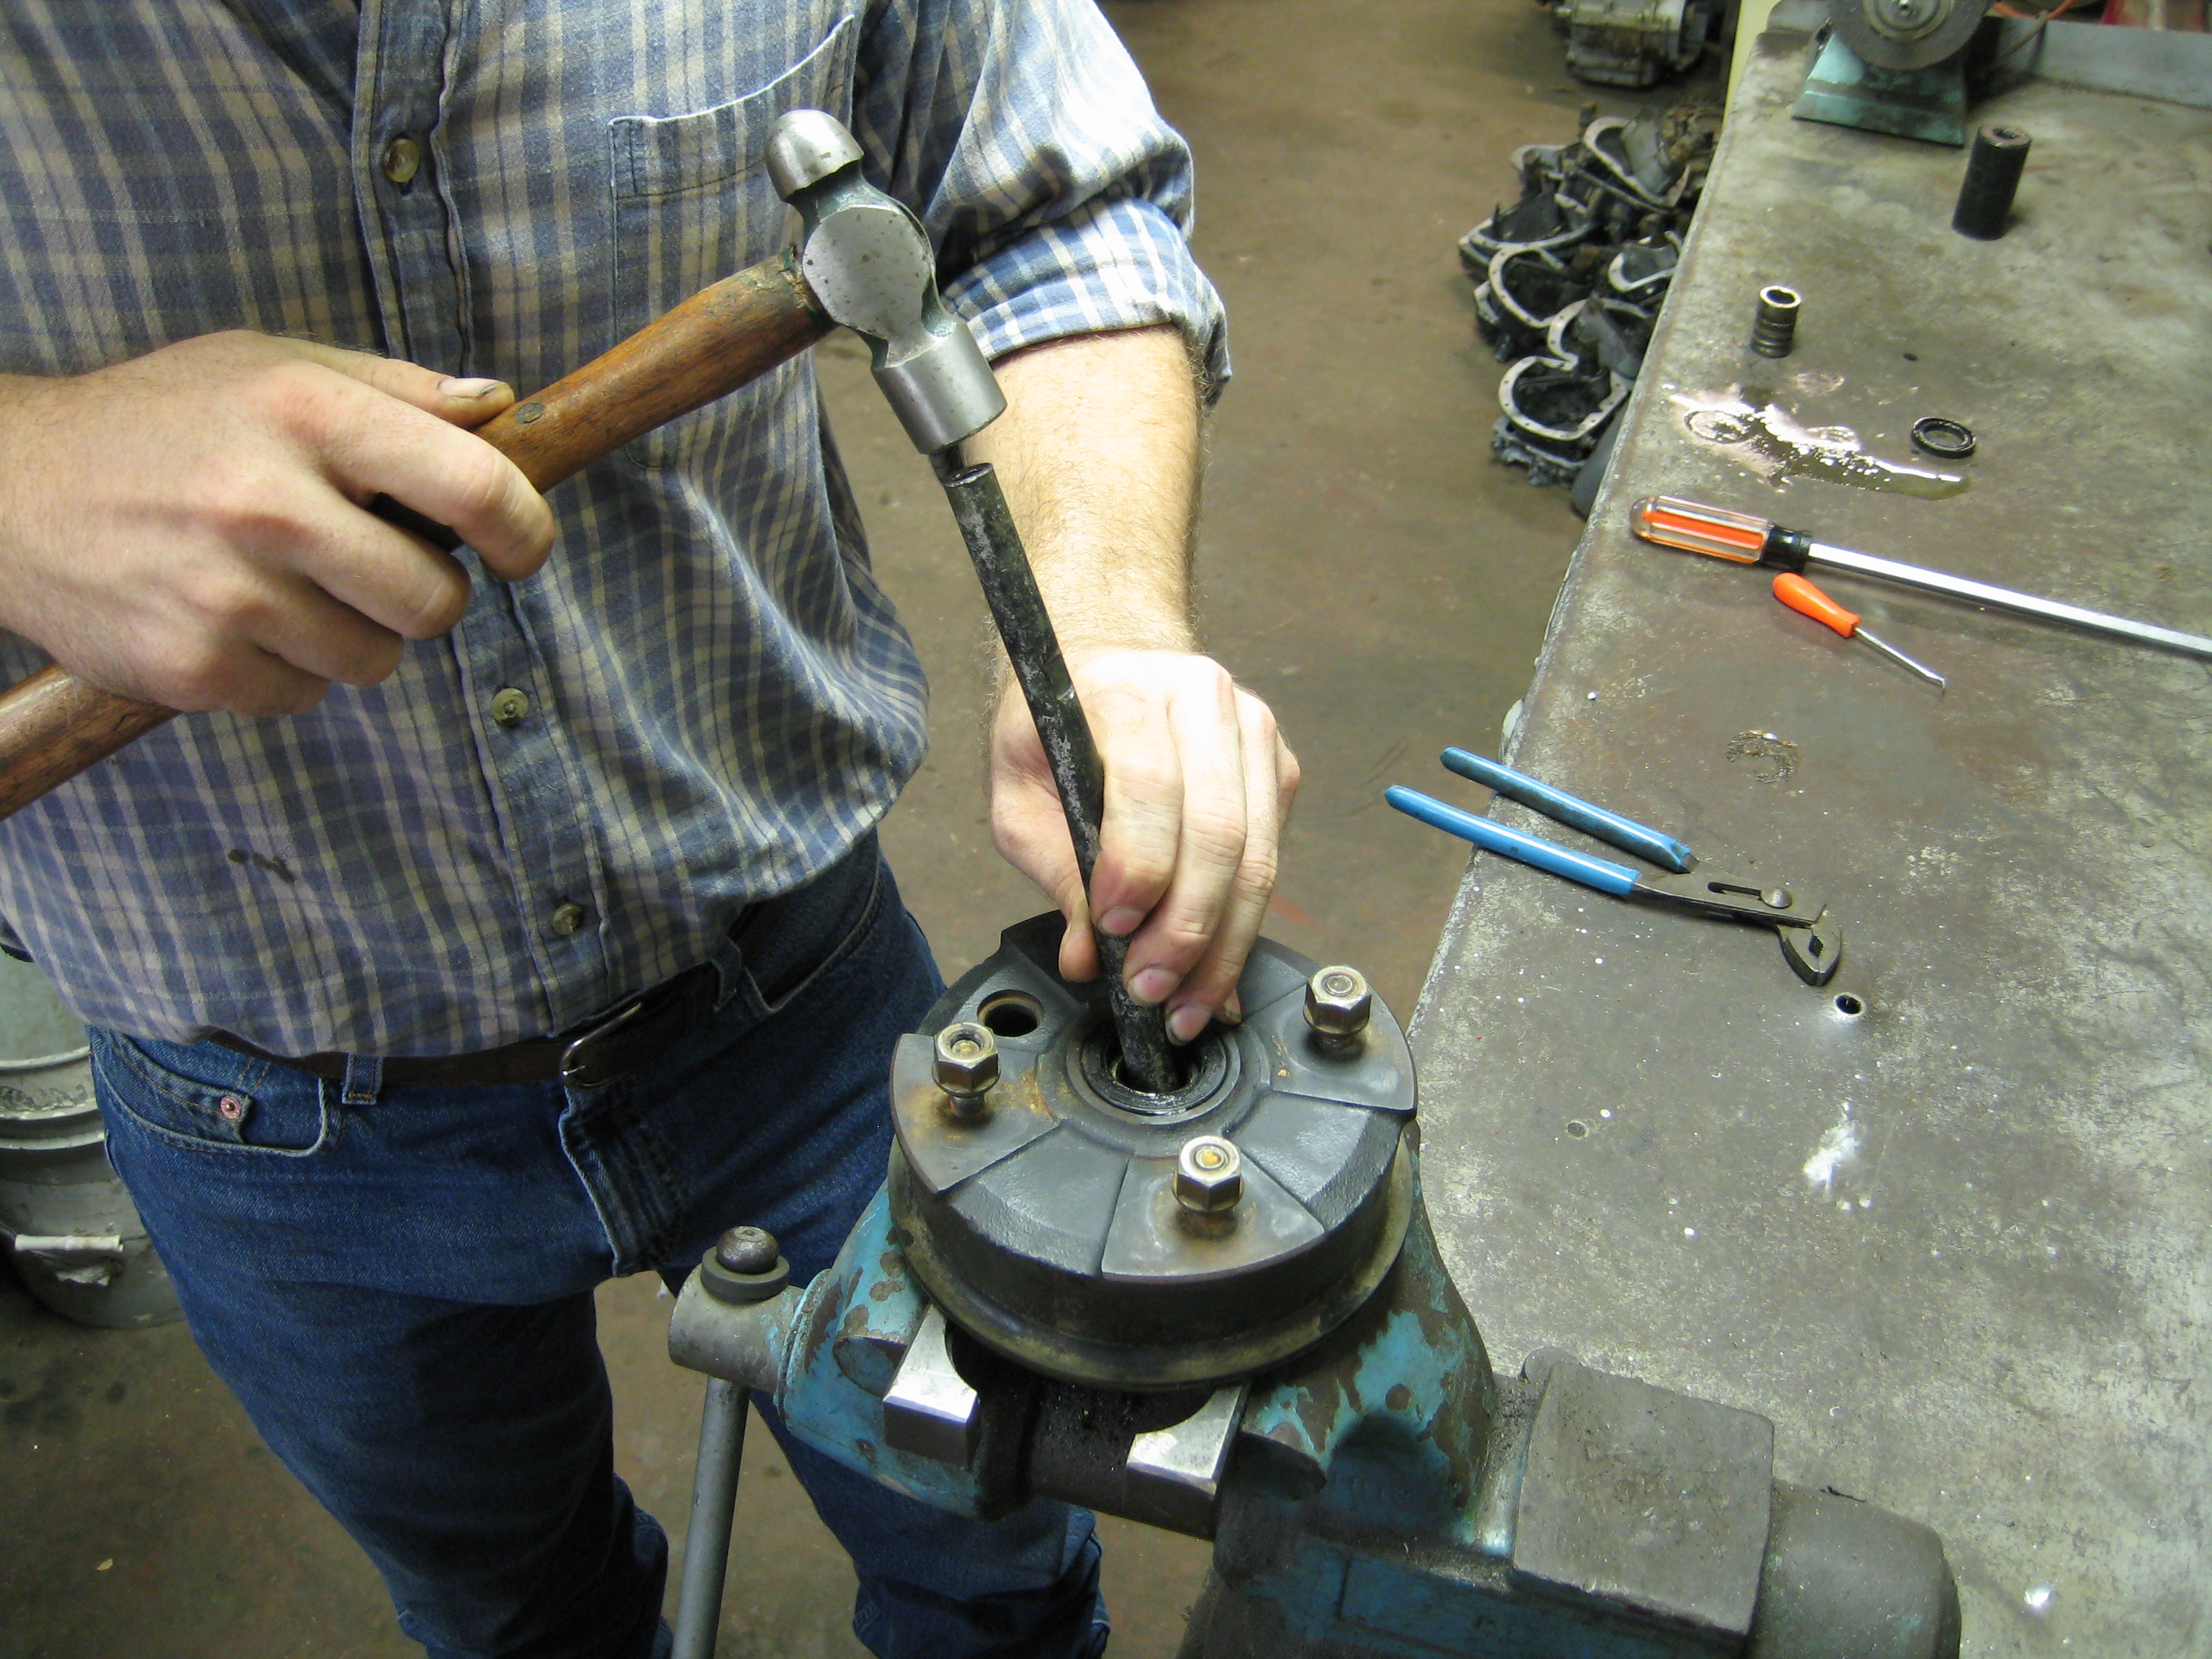 Removing the Bearing